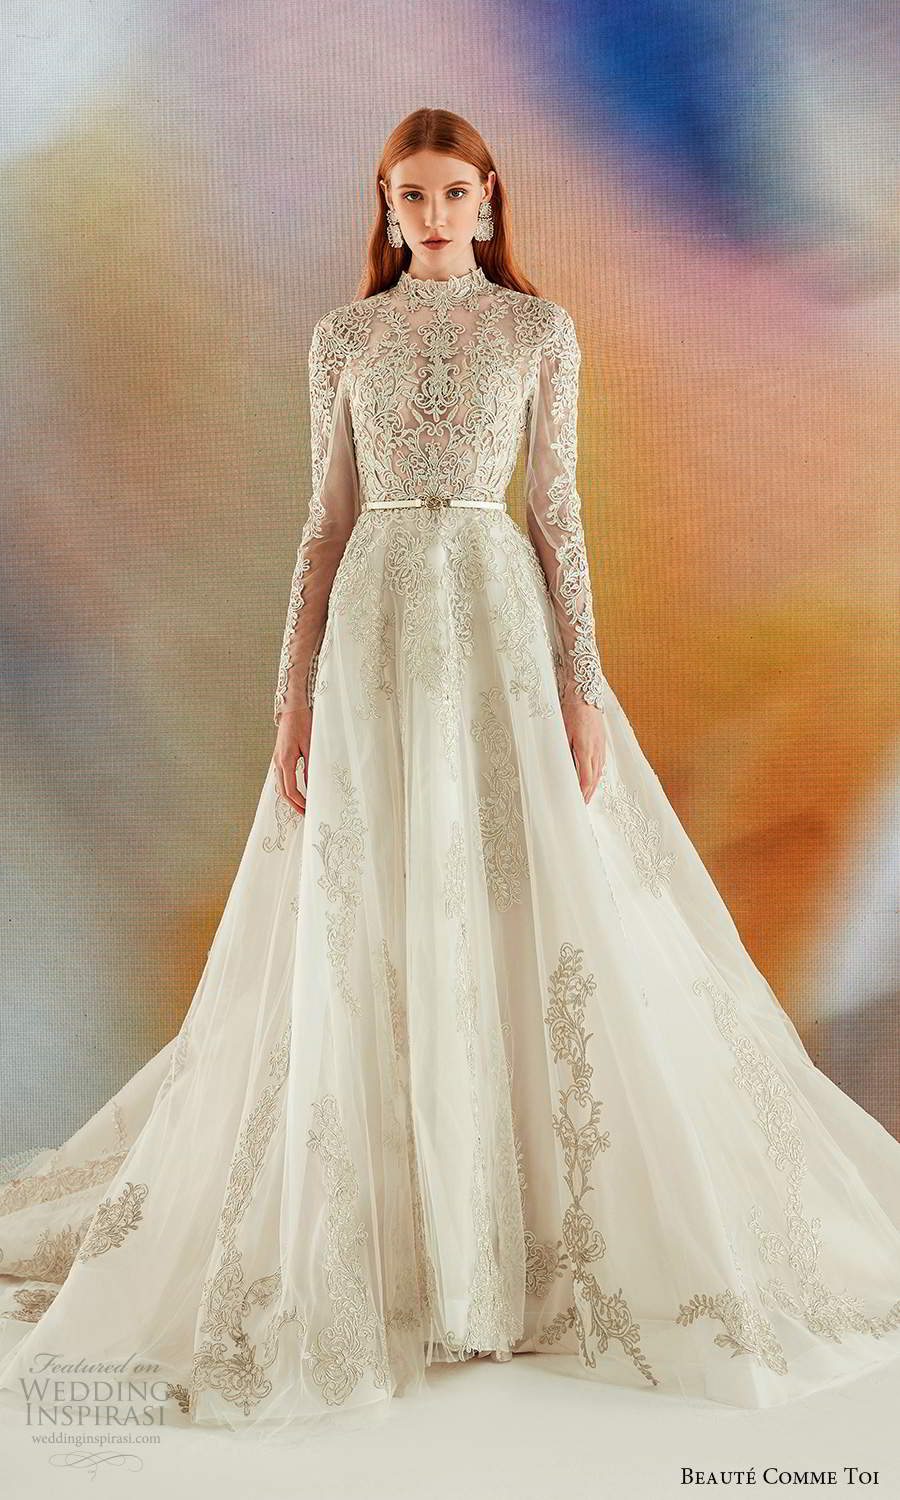 beaute comme toi fall 2021 bridal long sleeves high neckline fully embellished a line ball gown wedding dress chapel train gold (2) mv